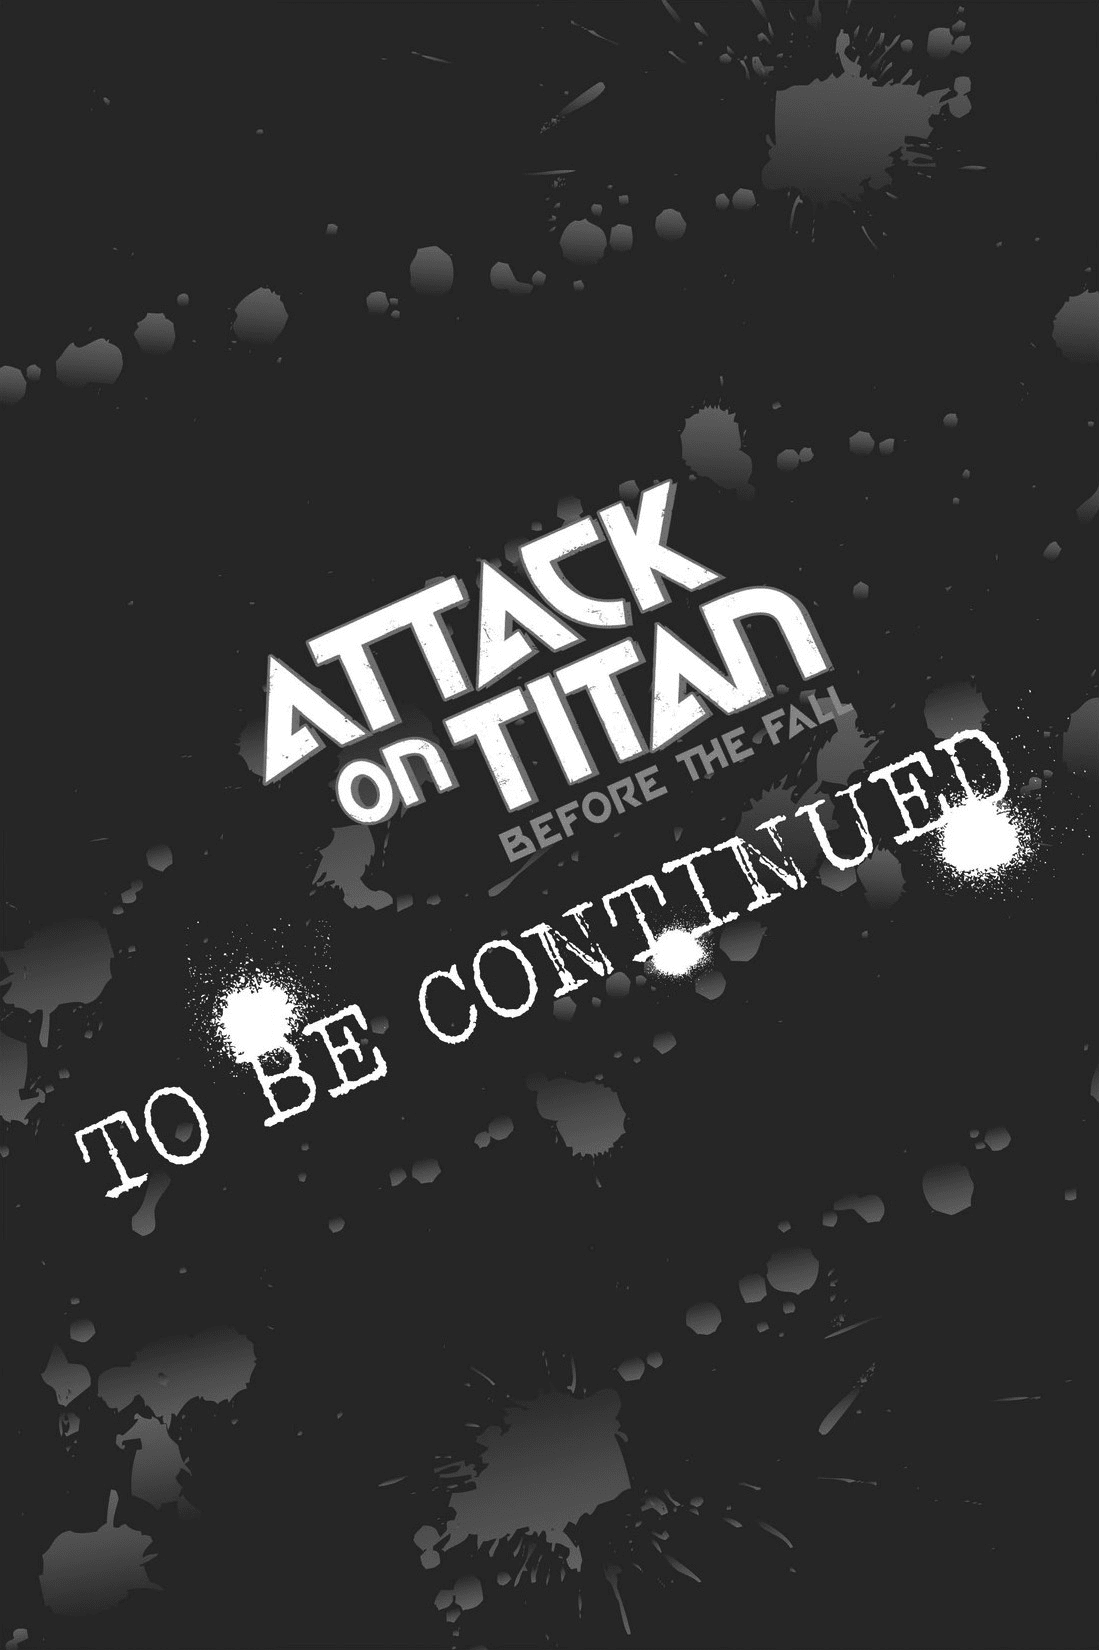 Read online Attack on Titan: Before the Fall comic -  Issue #2 - 187